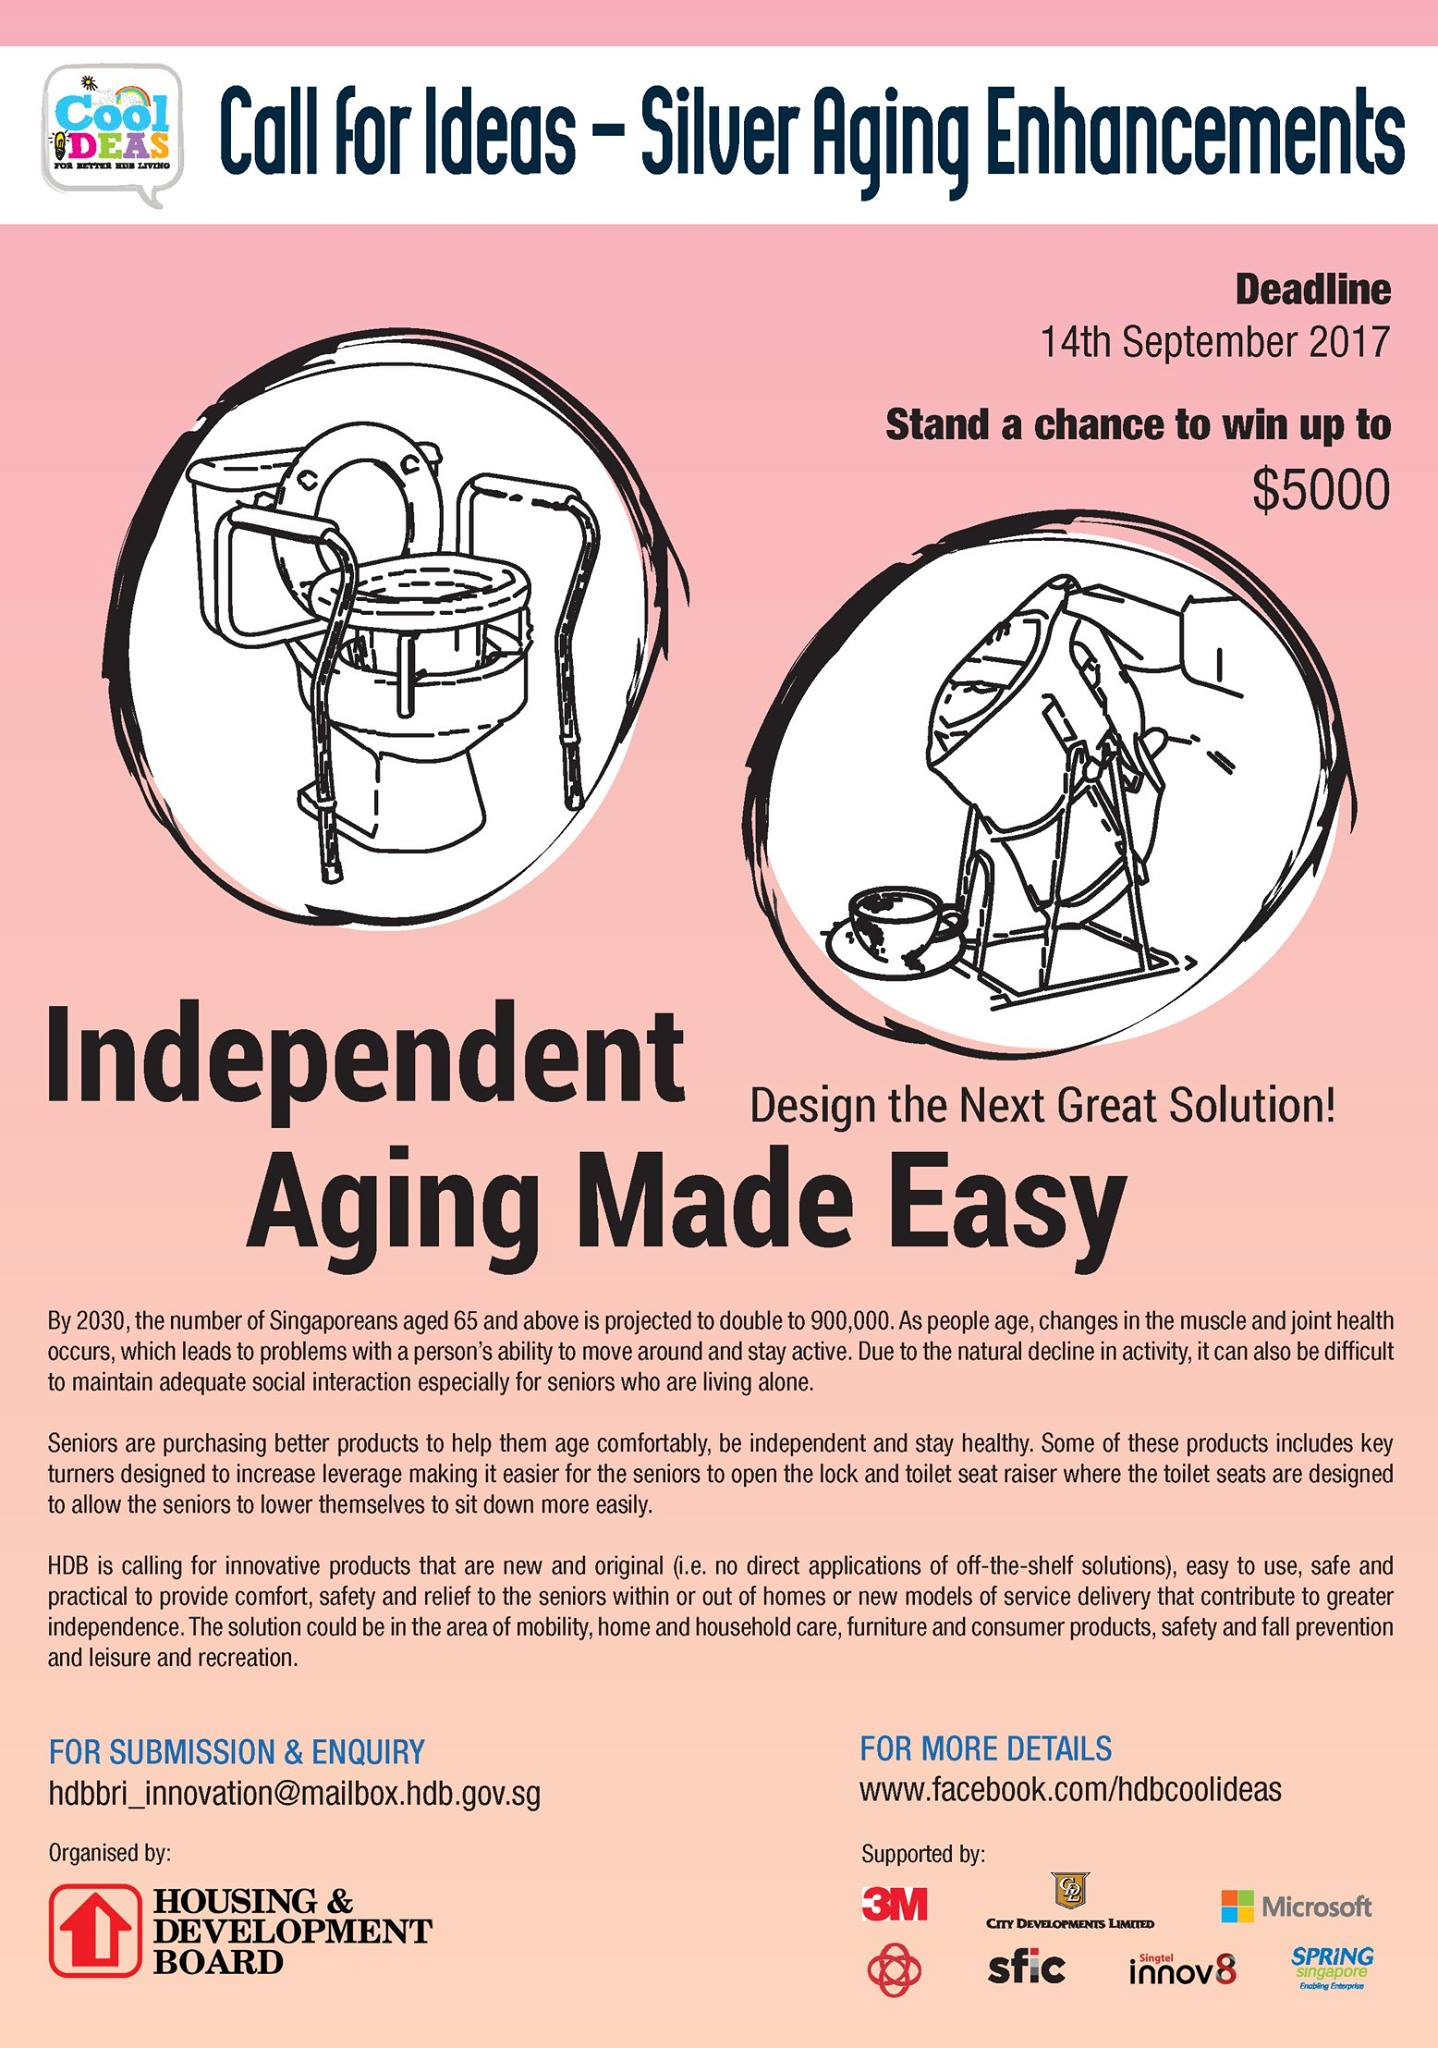 CALL FOR IDEAS - SILVER AGEING ENHANCEMENTS